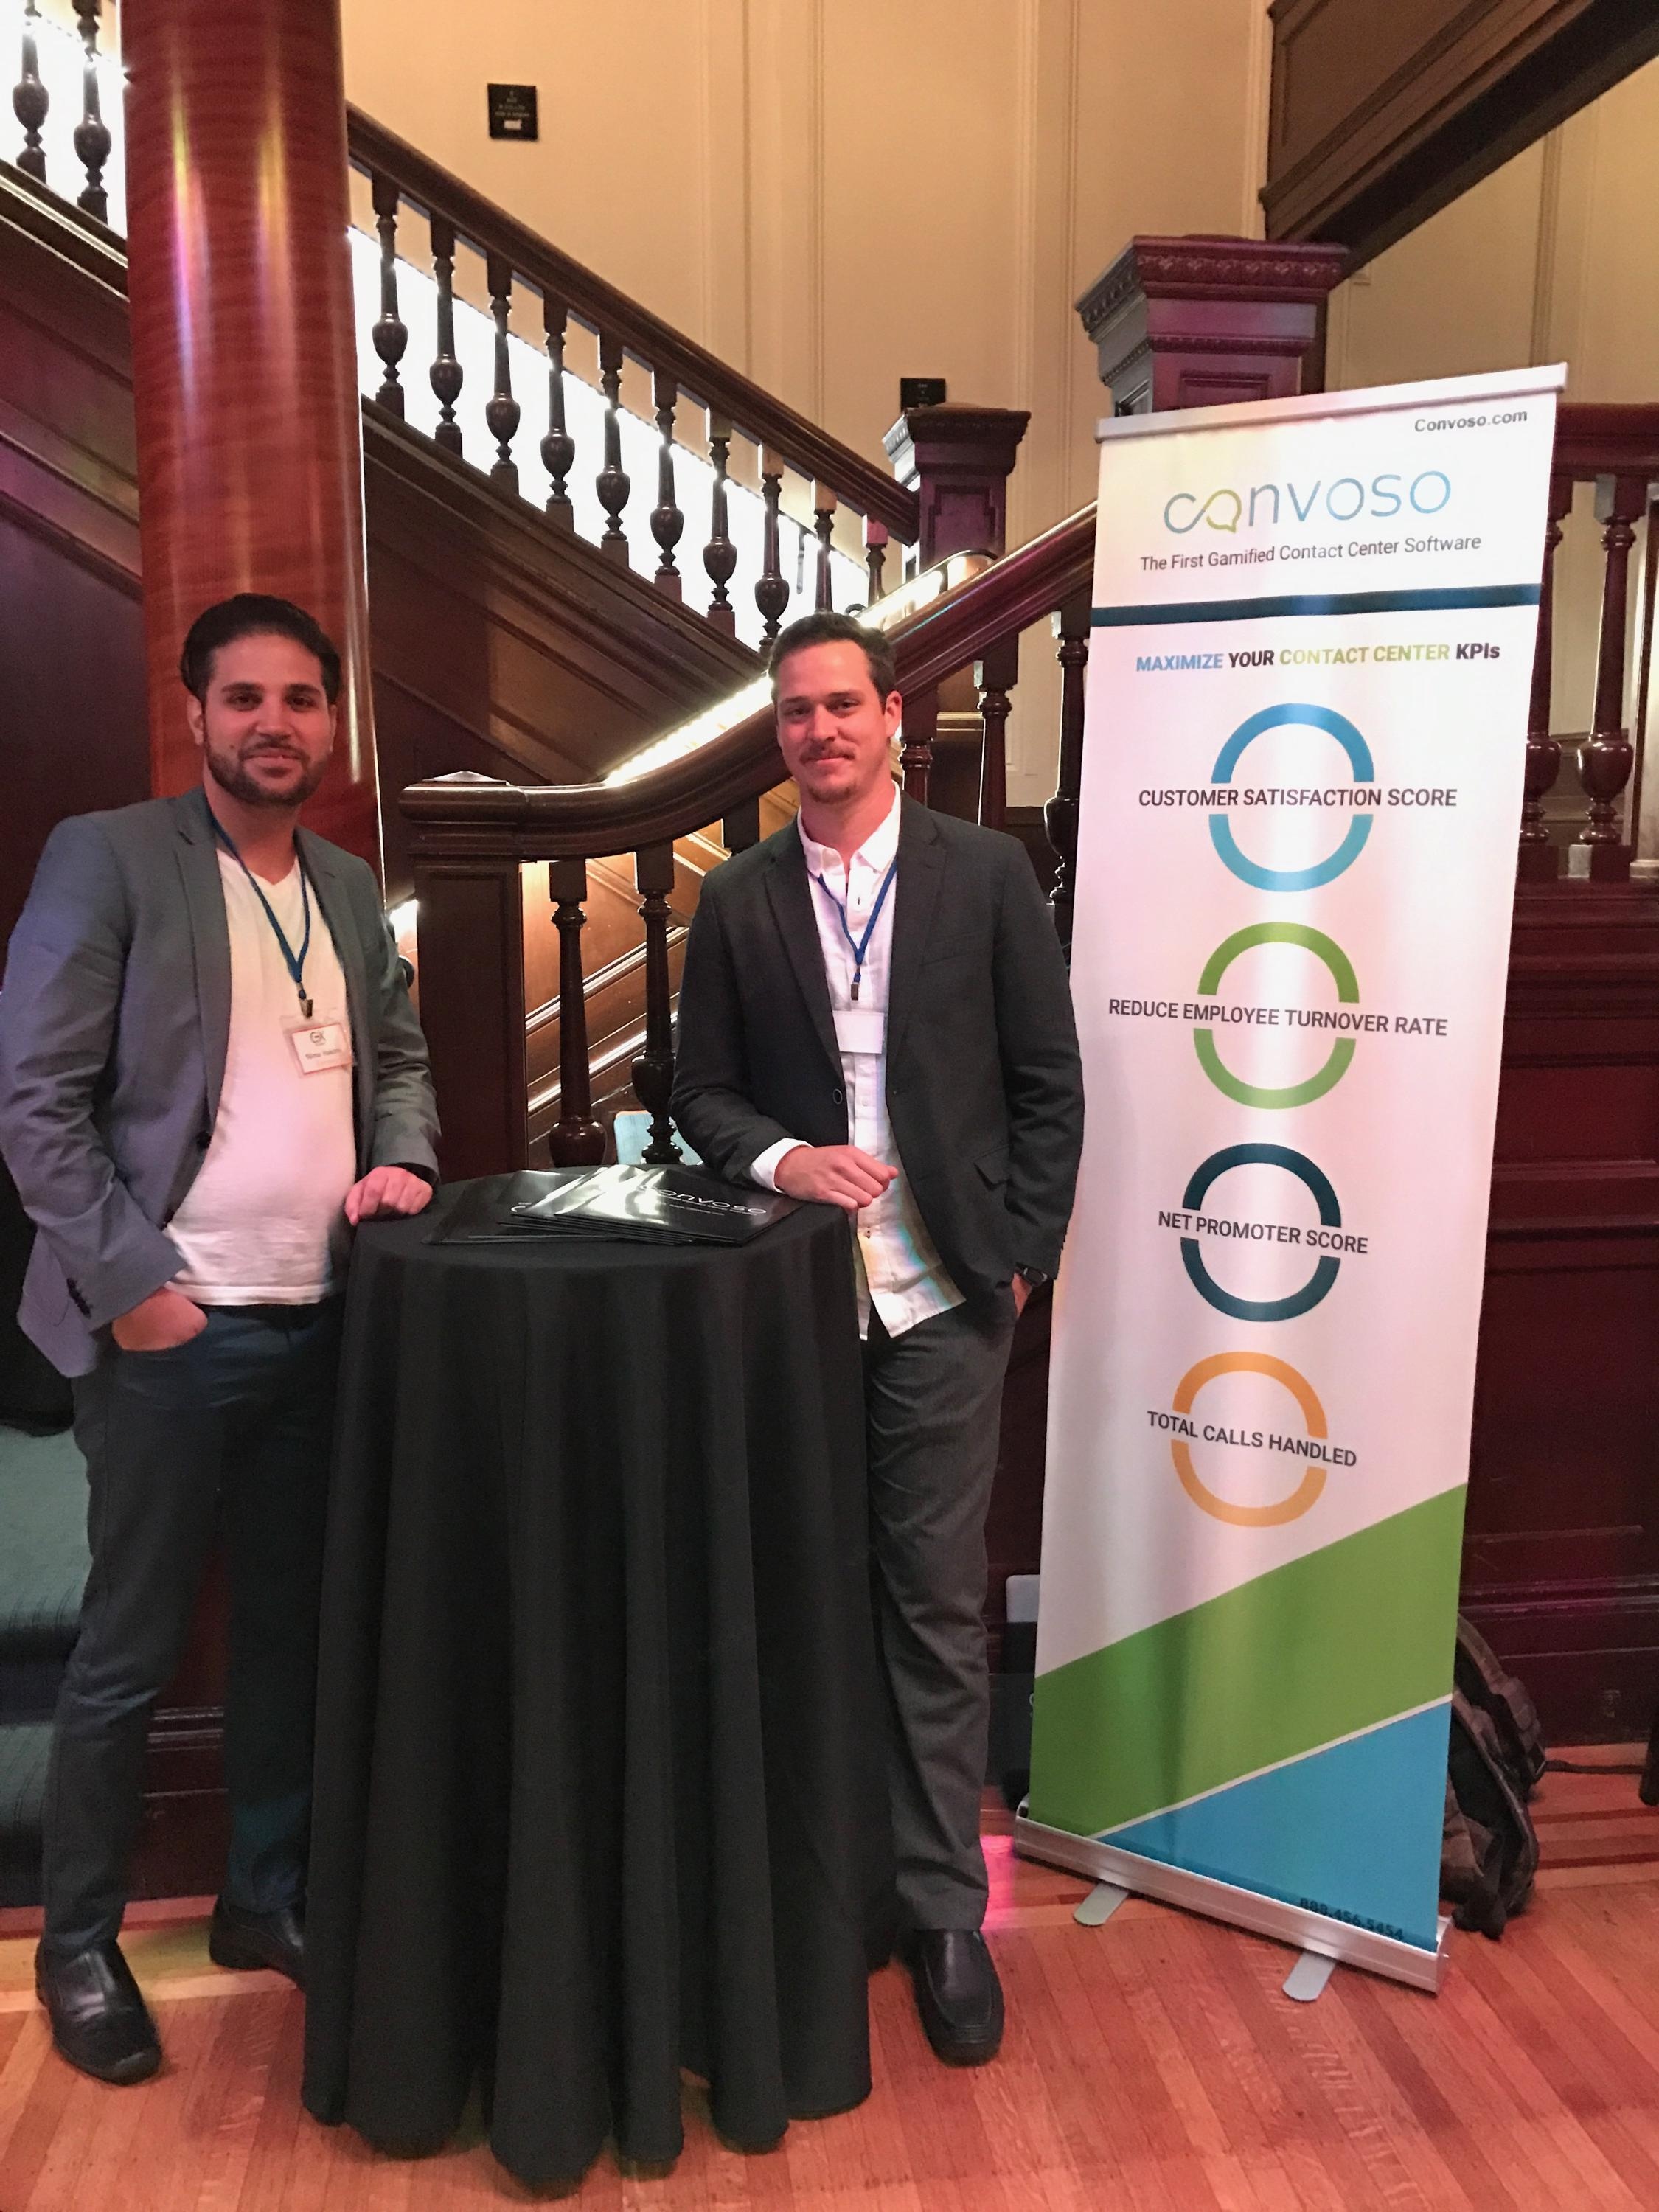 Convoso's CEO Nima Hakimi and Director of Customer Experience David Brown